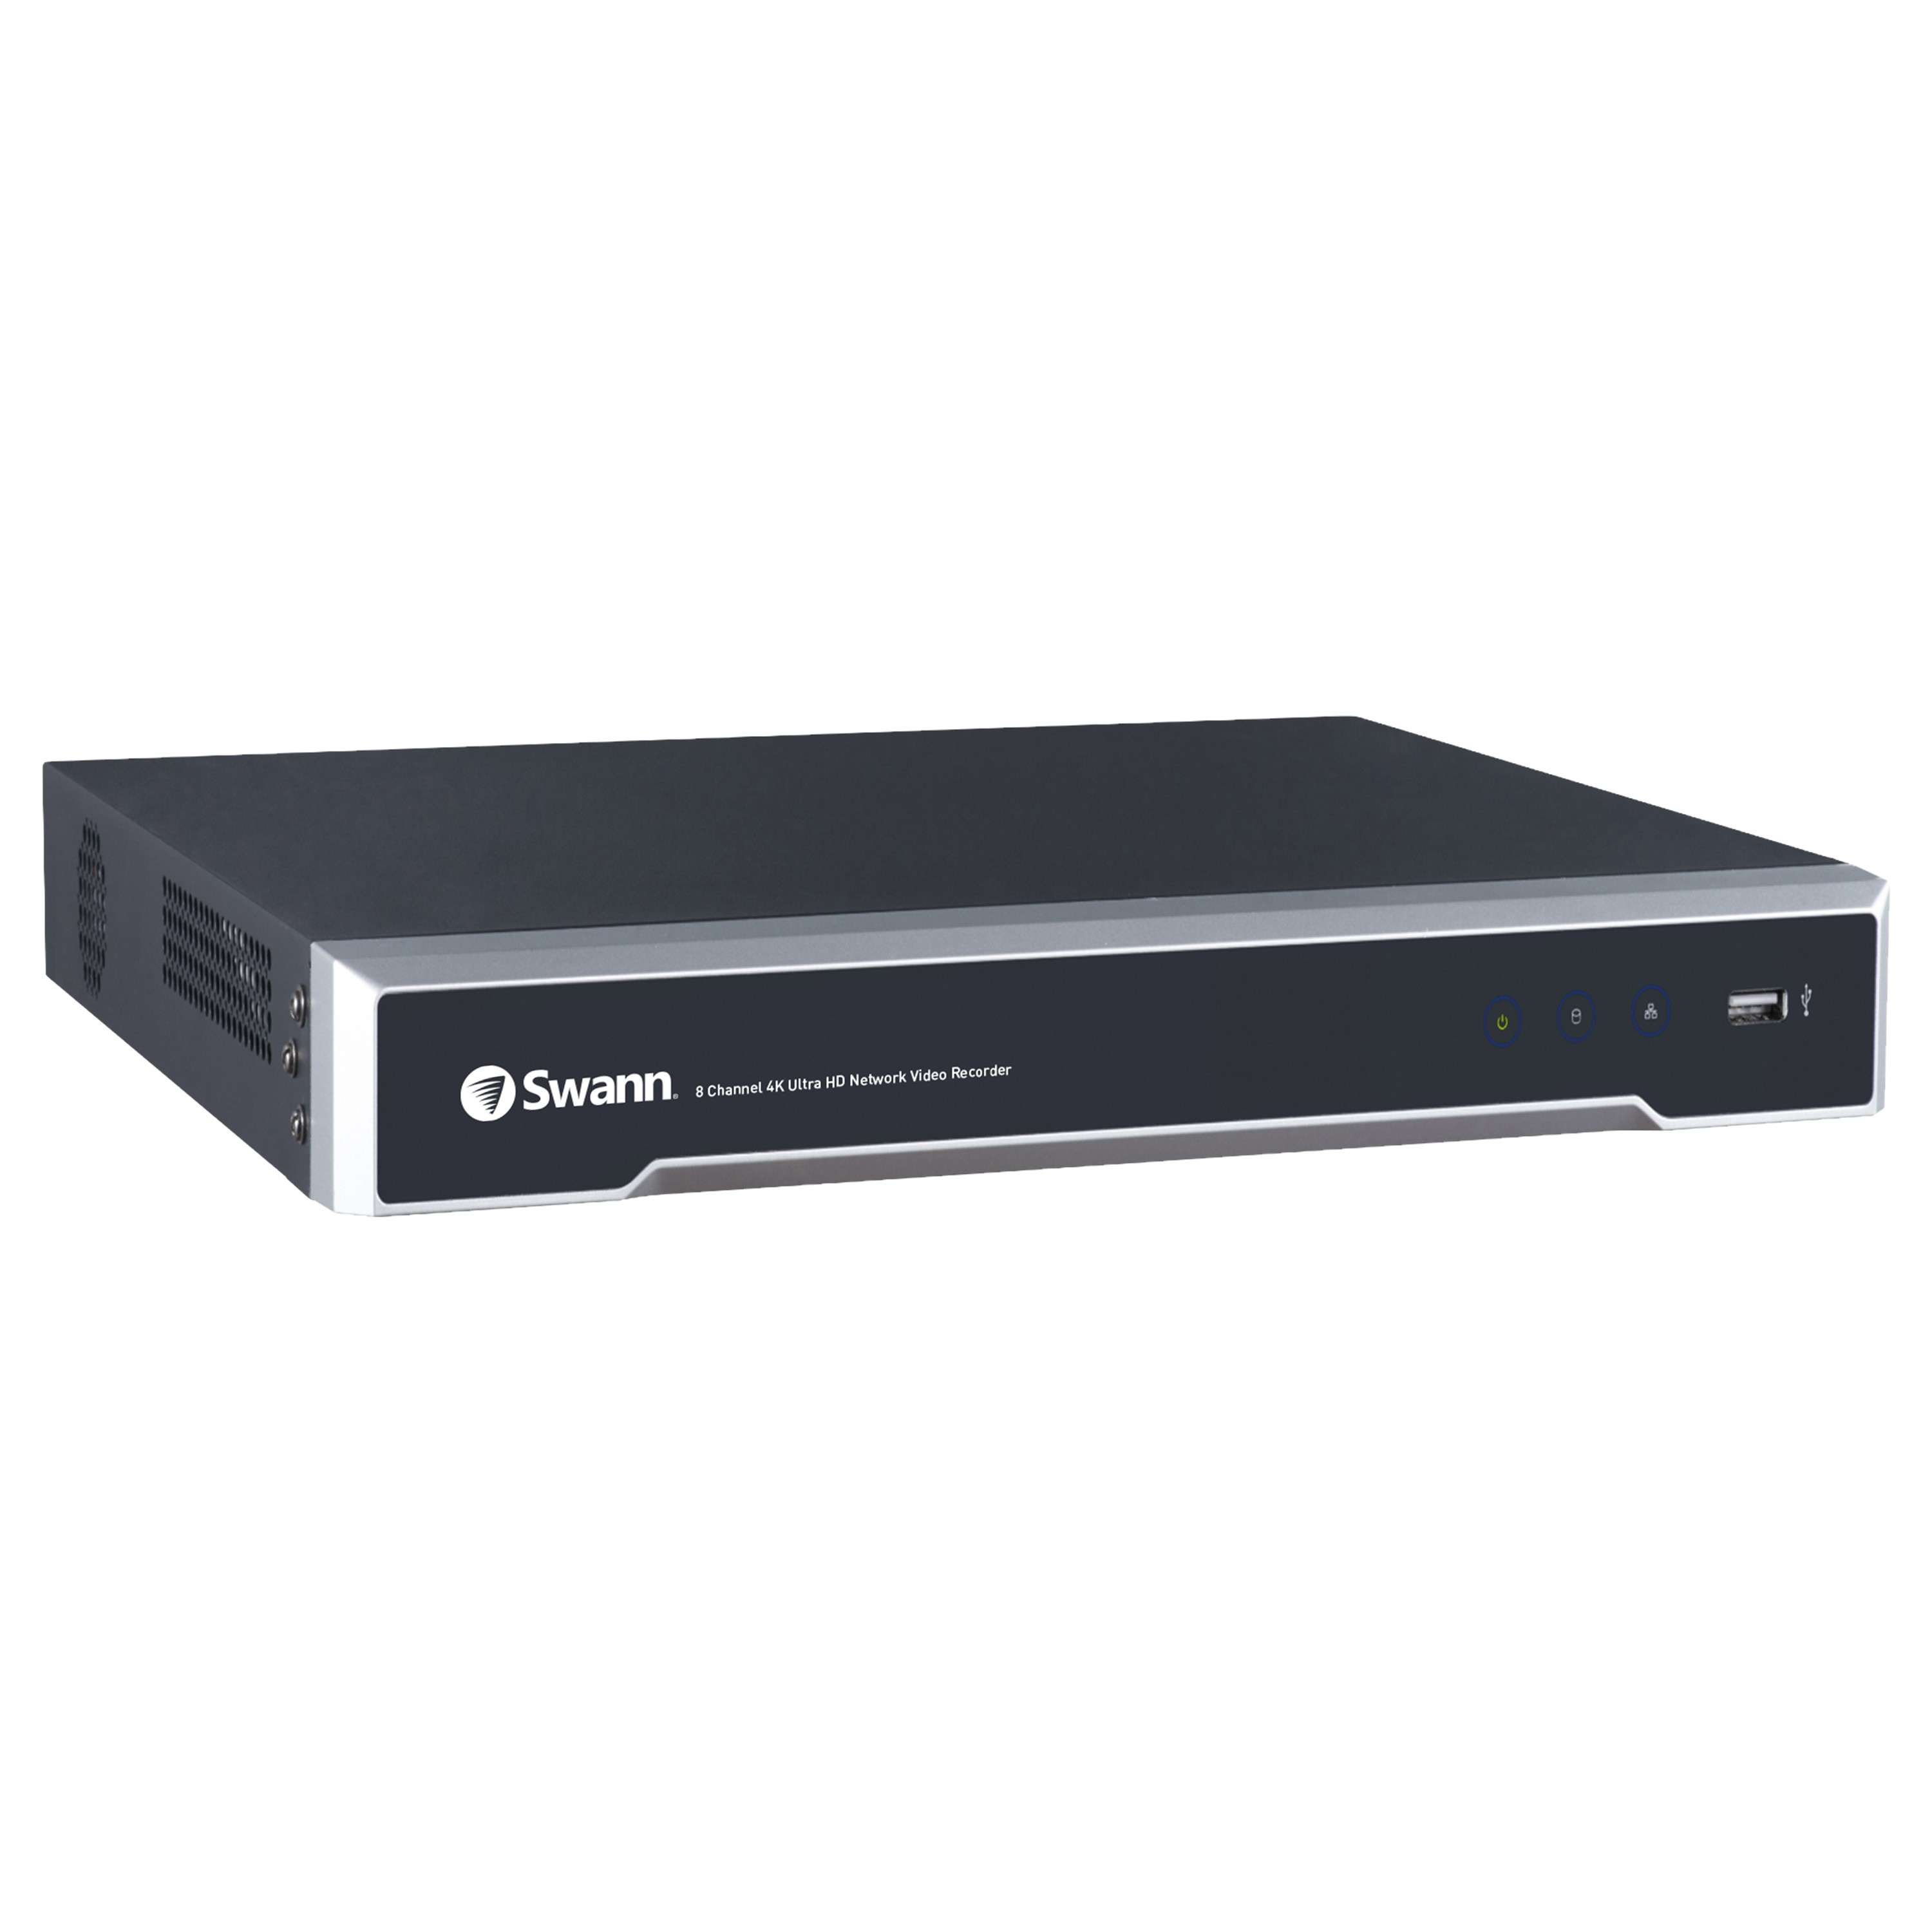 SONVR-88000T Swann 8 Channel Network Video Recorder: 4K Ultra HD NVR-8000 with 2TB HDD -